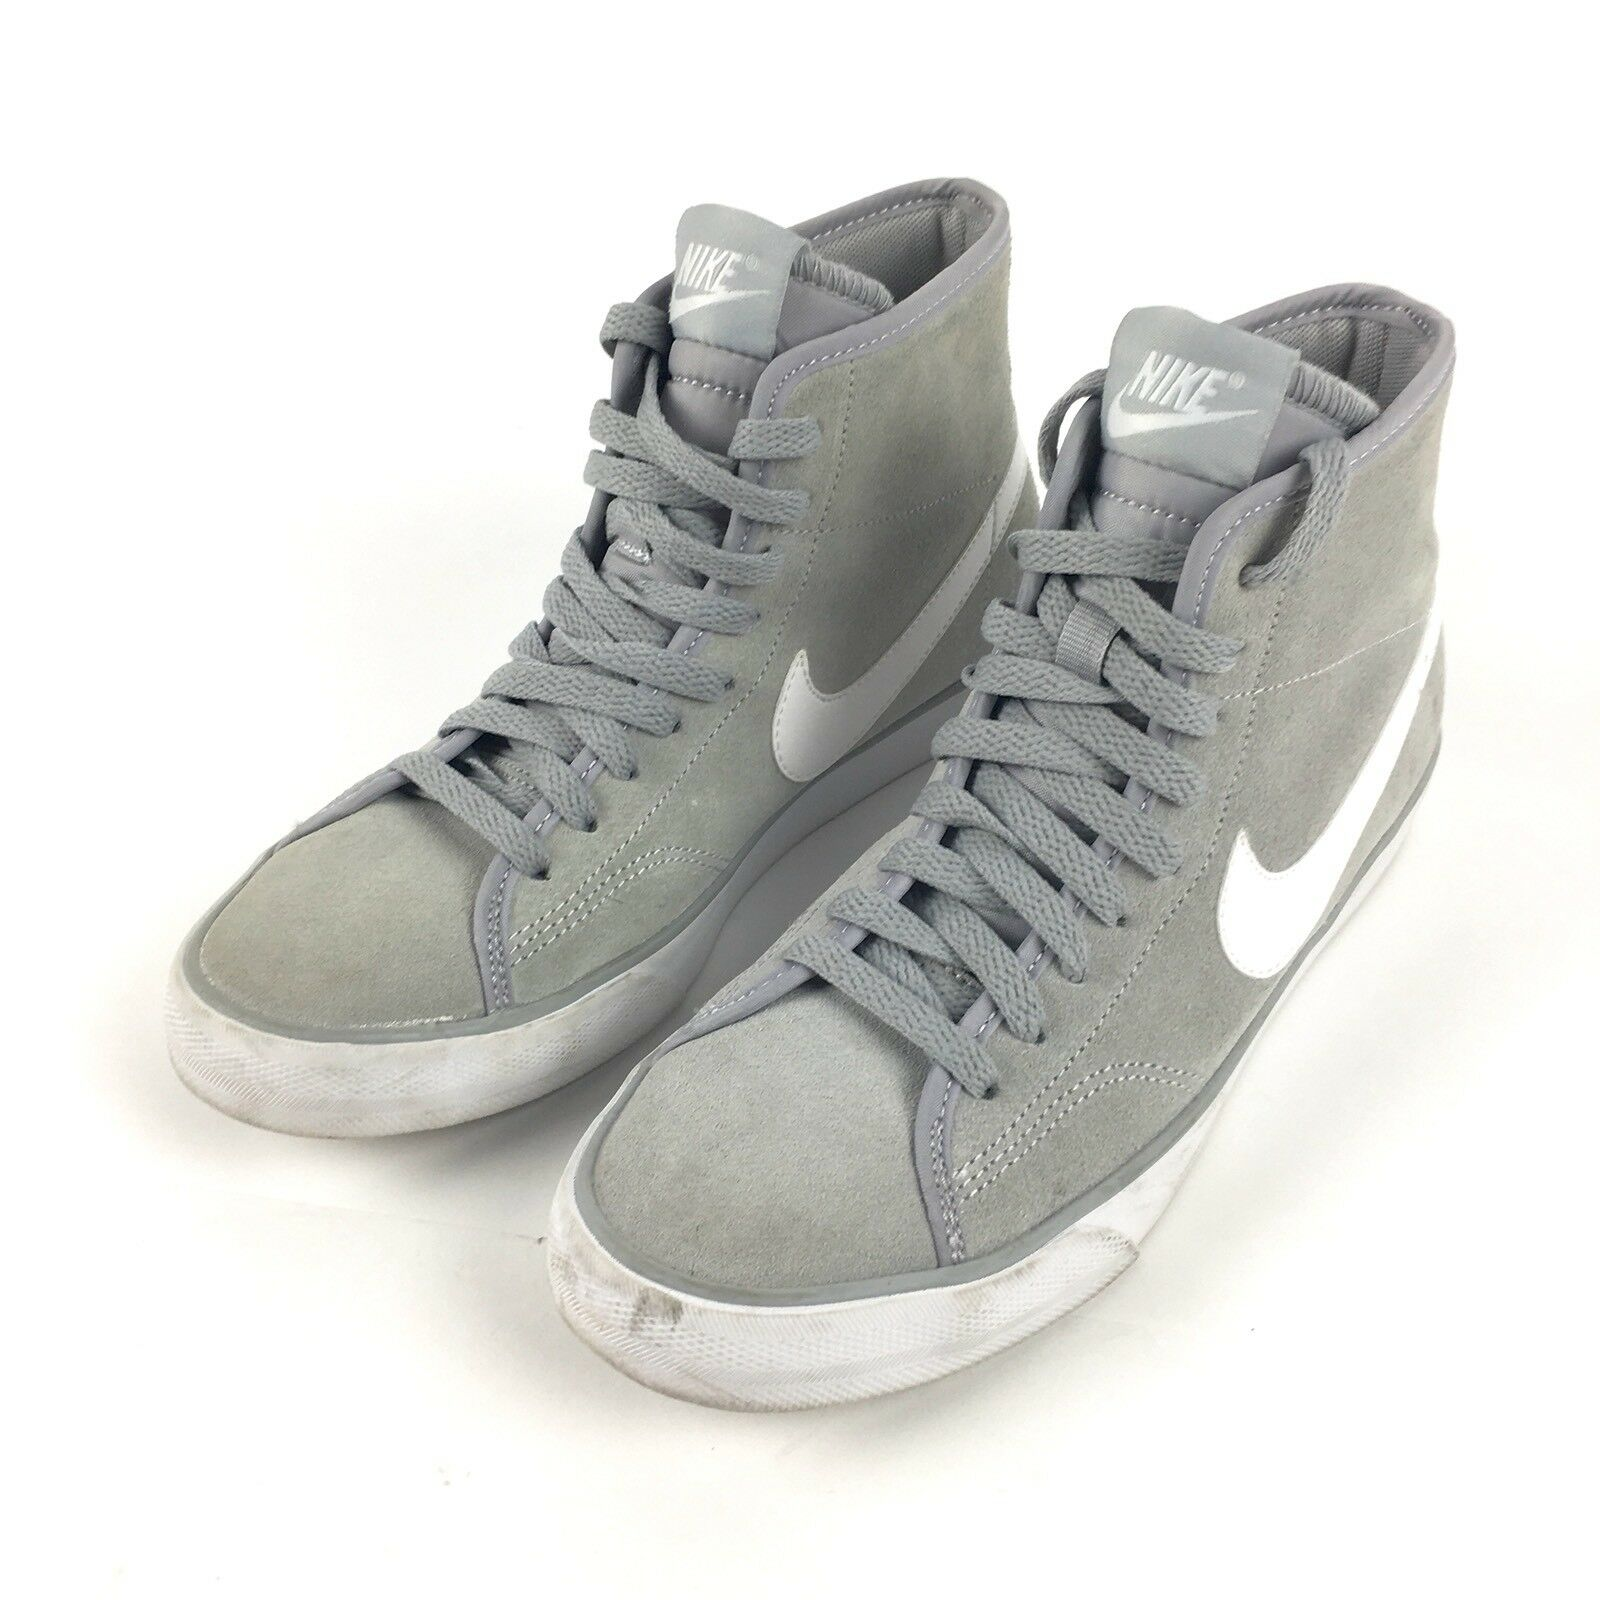 Nike Primo Court Women's 6 Grey Suede Athletic Fashion Sneakers 630656-010 Wild casual shoes